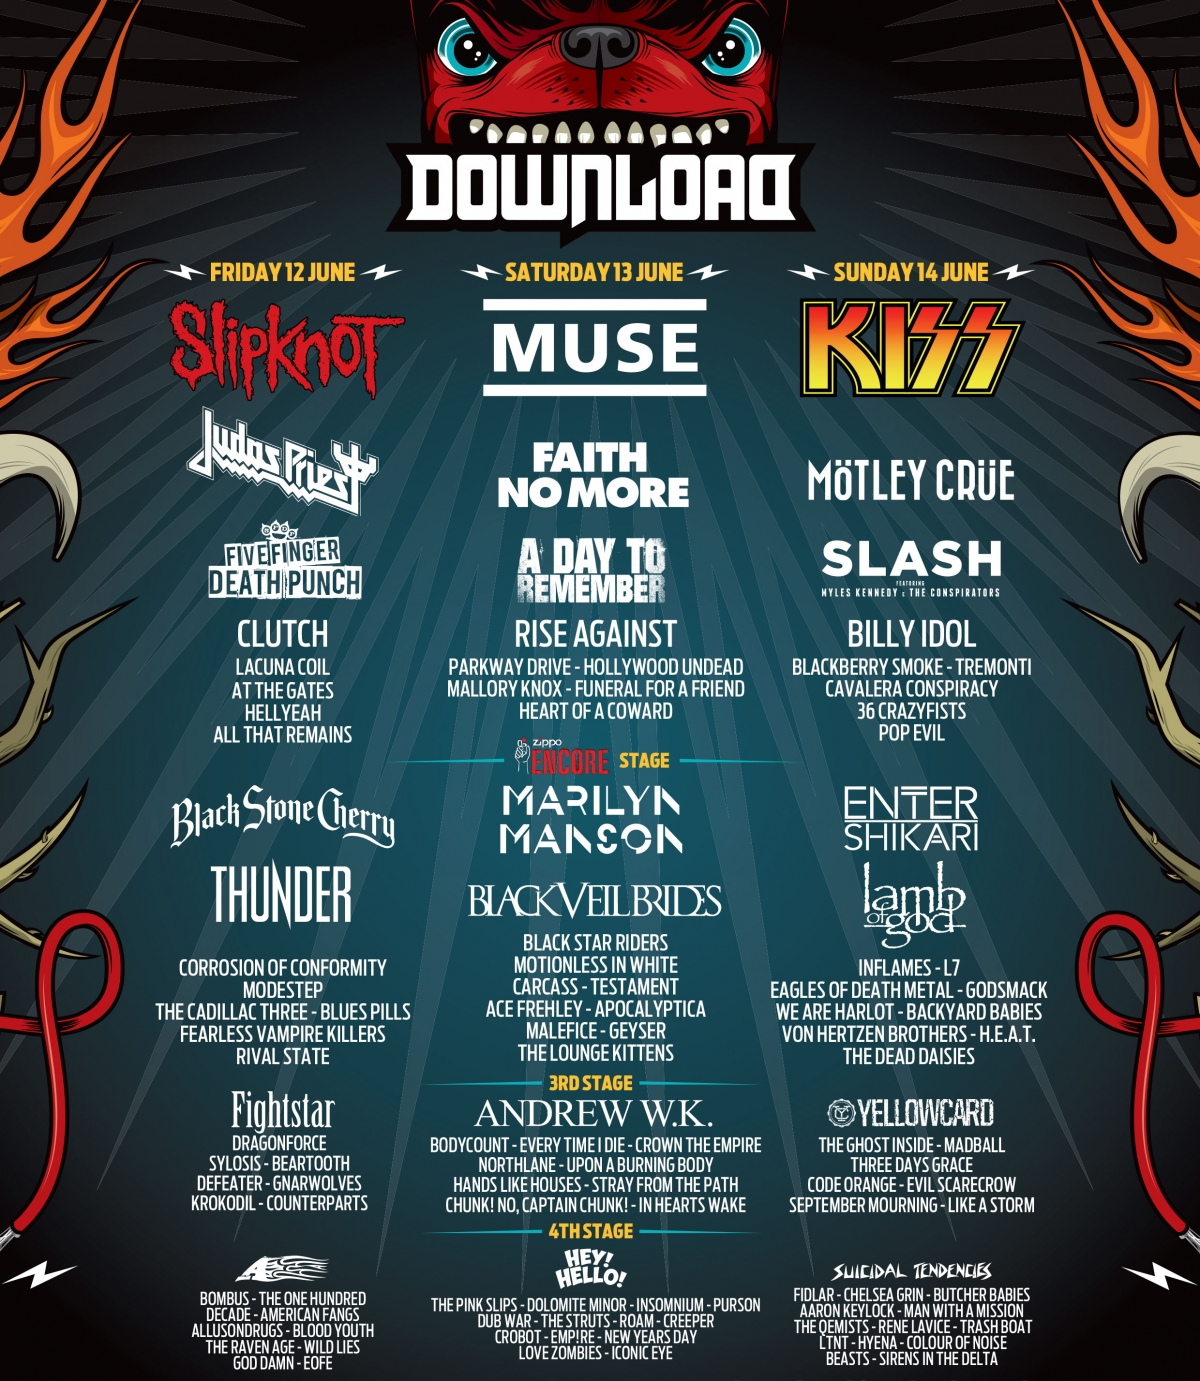 Download Festival 2015 | Ghost Cult Magazine